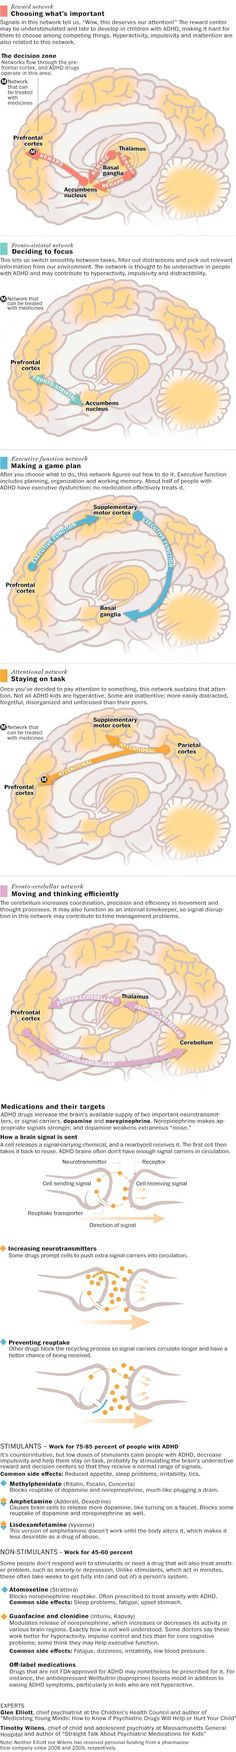 Your brain & ADHD - The Washington Post. Repinned by SOS Inc. Resources pinterest.com/sostherapy/.